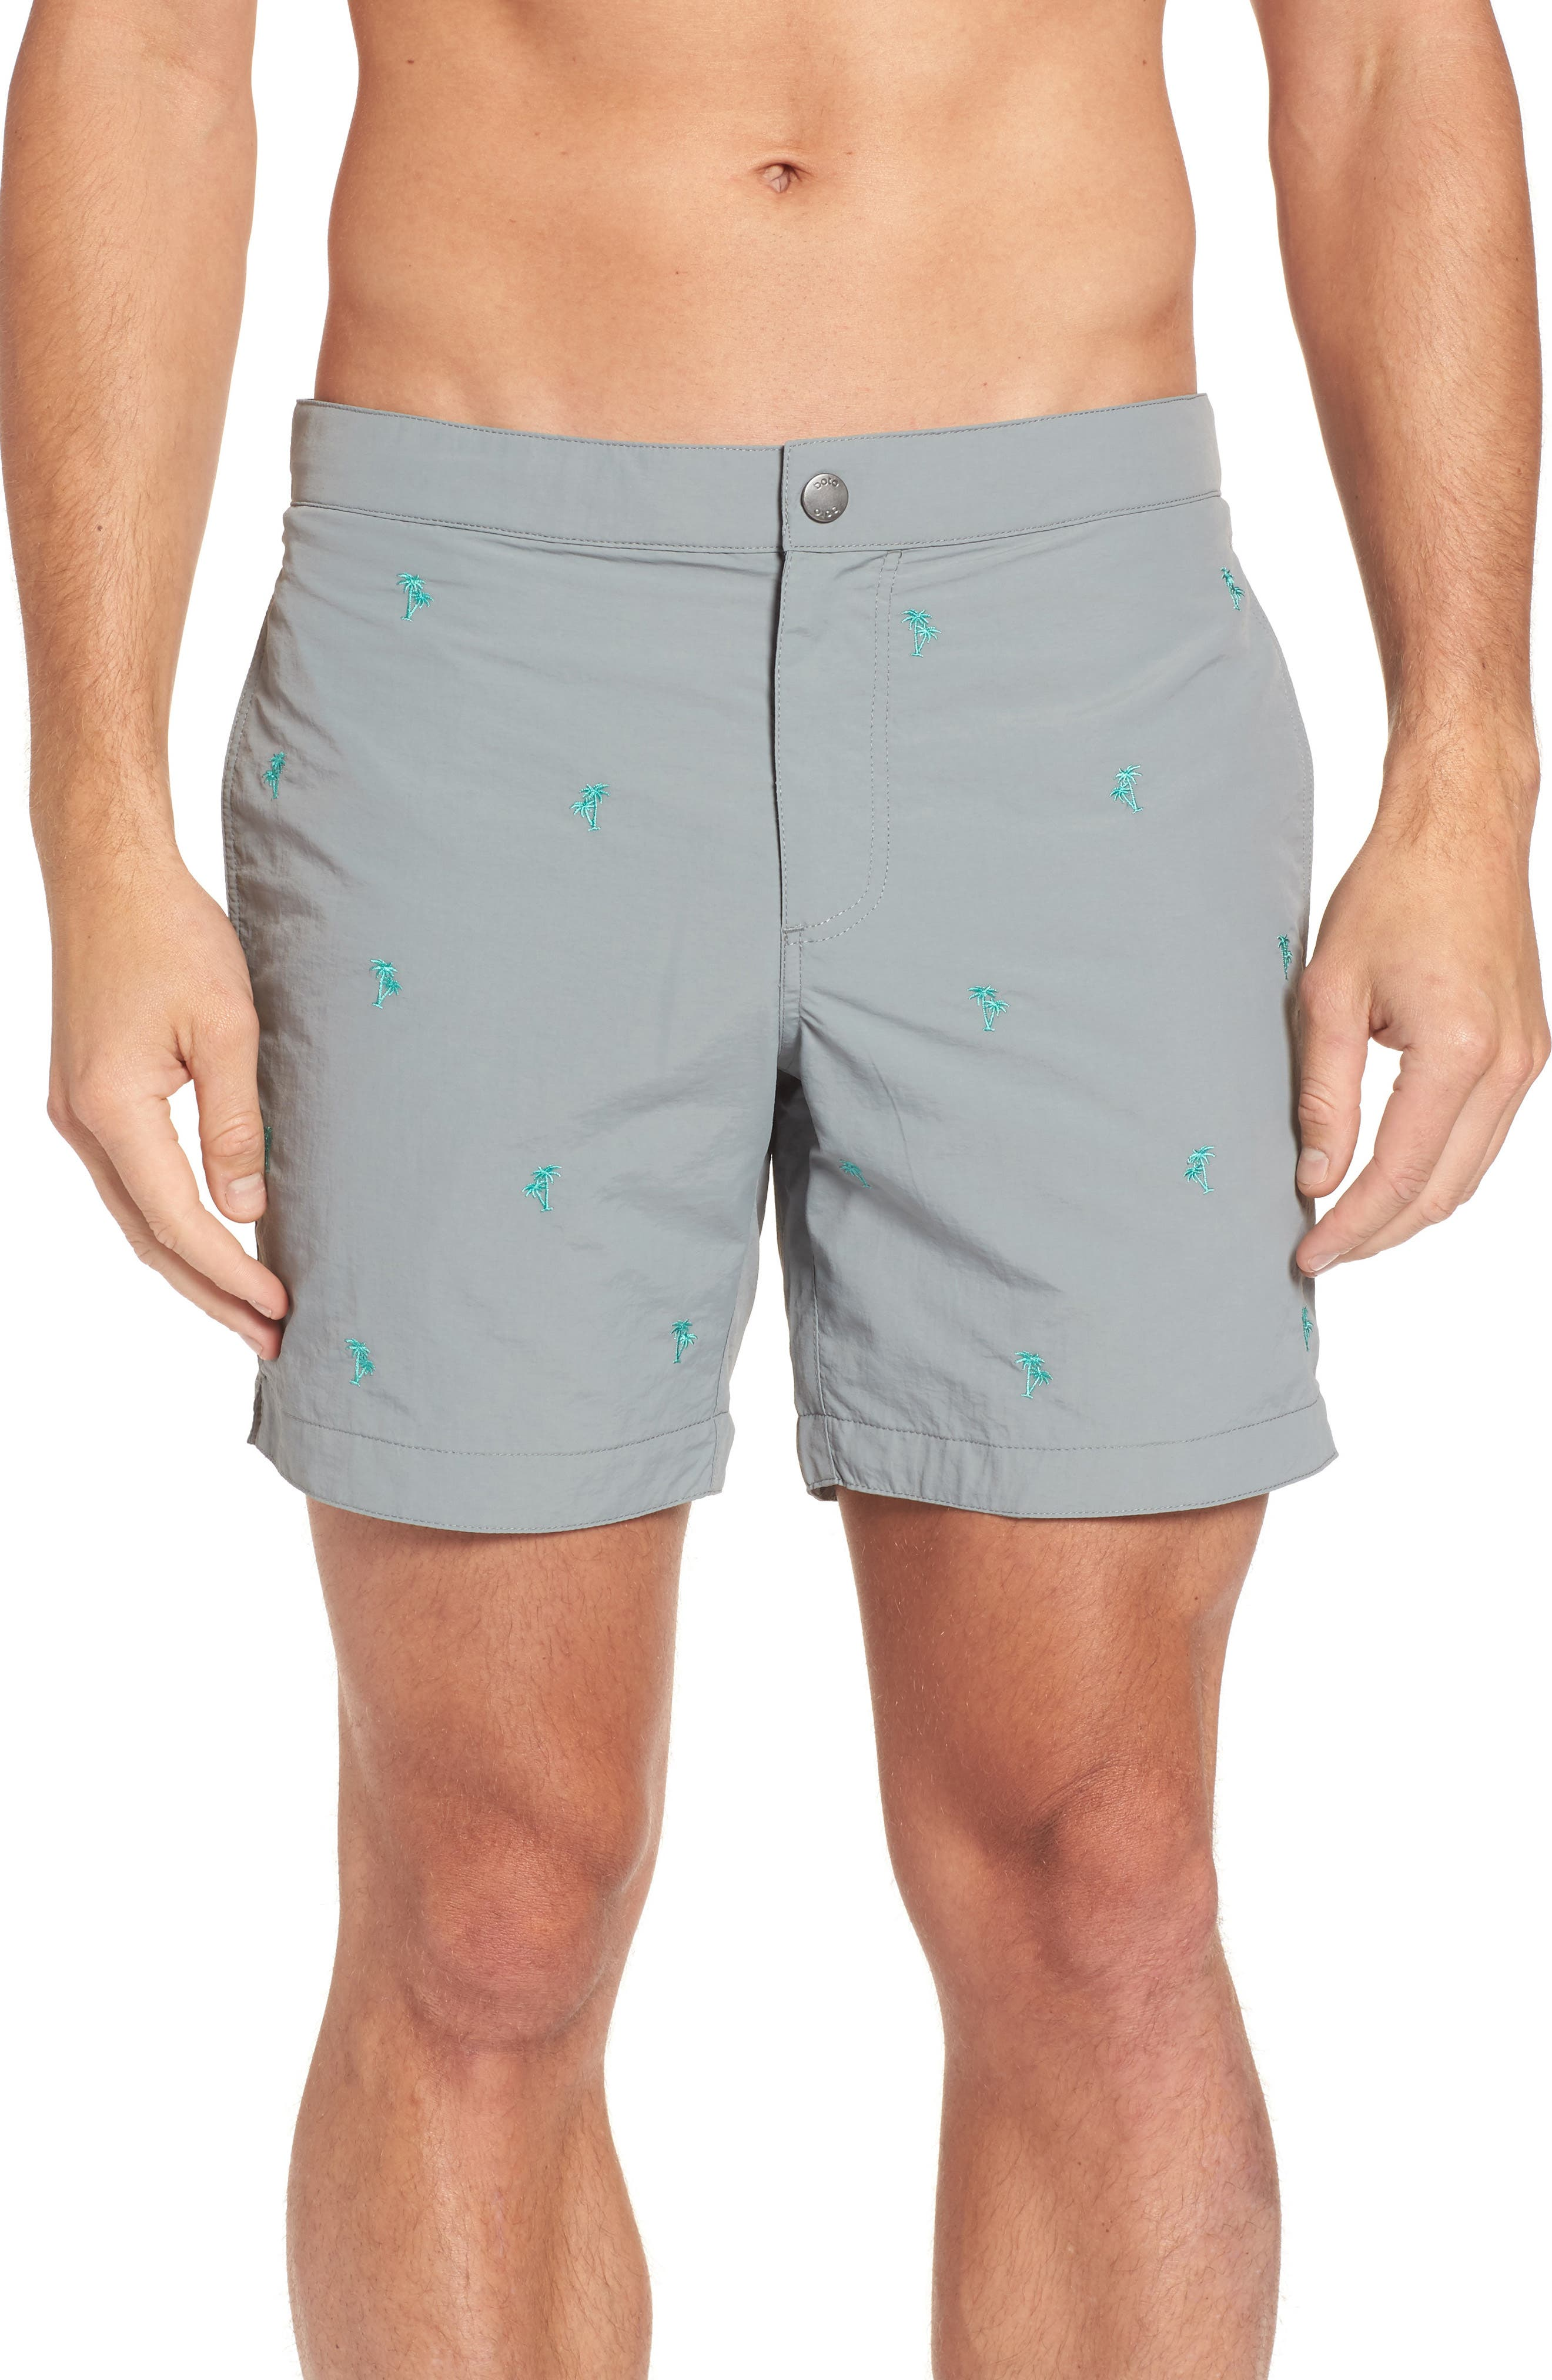 Aruba Tailored Fit Embroidered Palm Swim Trunks,                         Main,                         color, 031